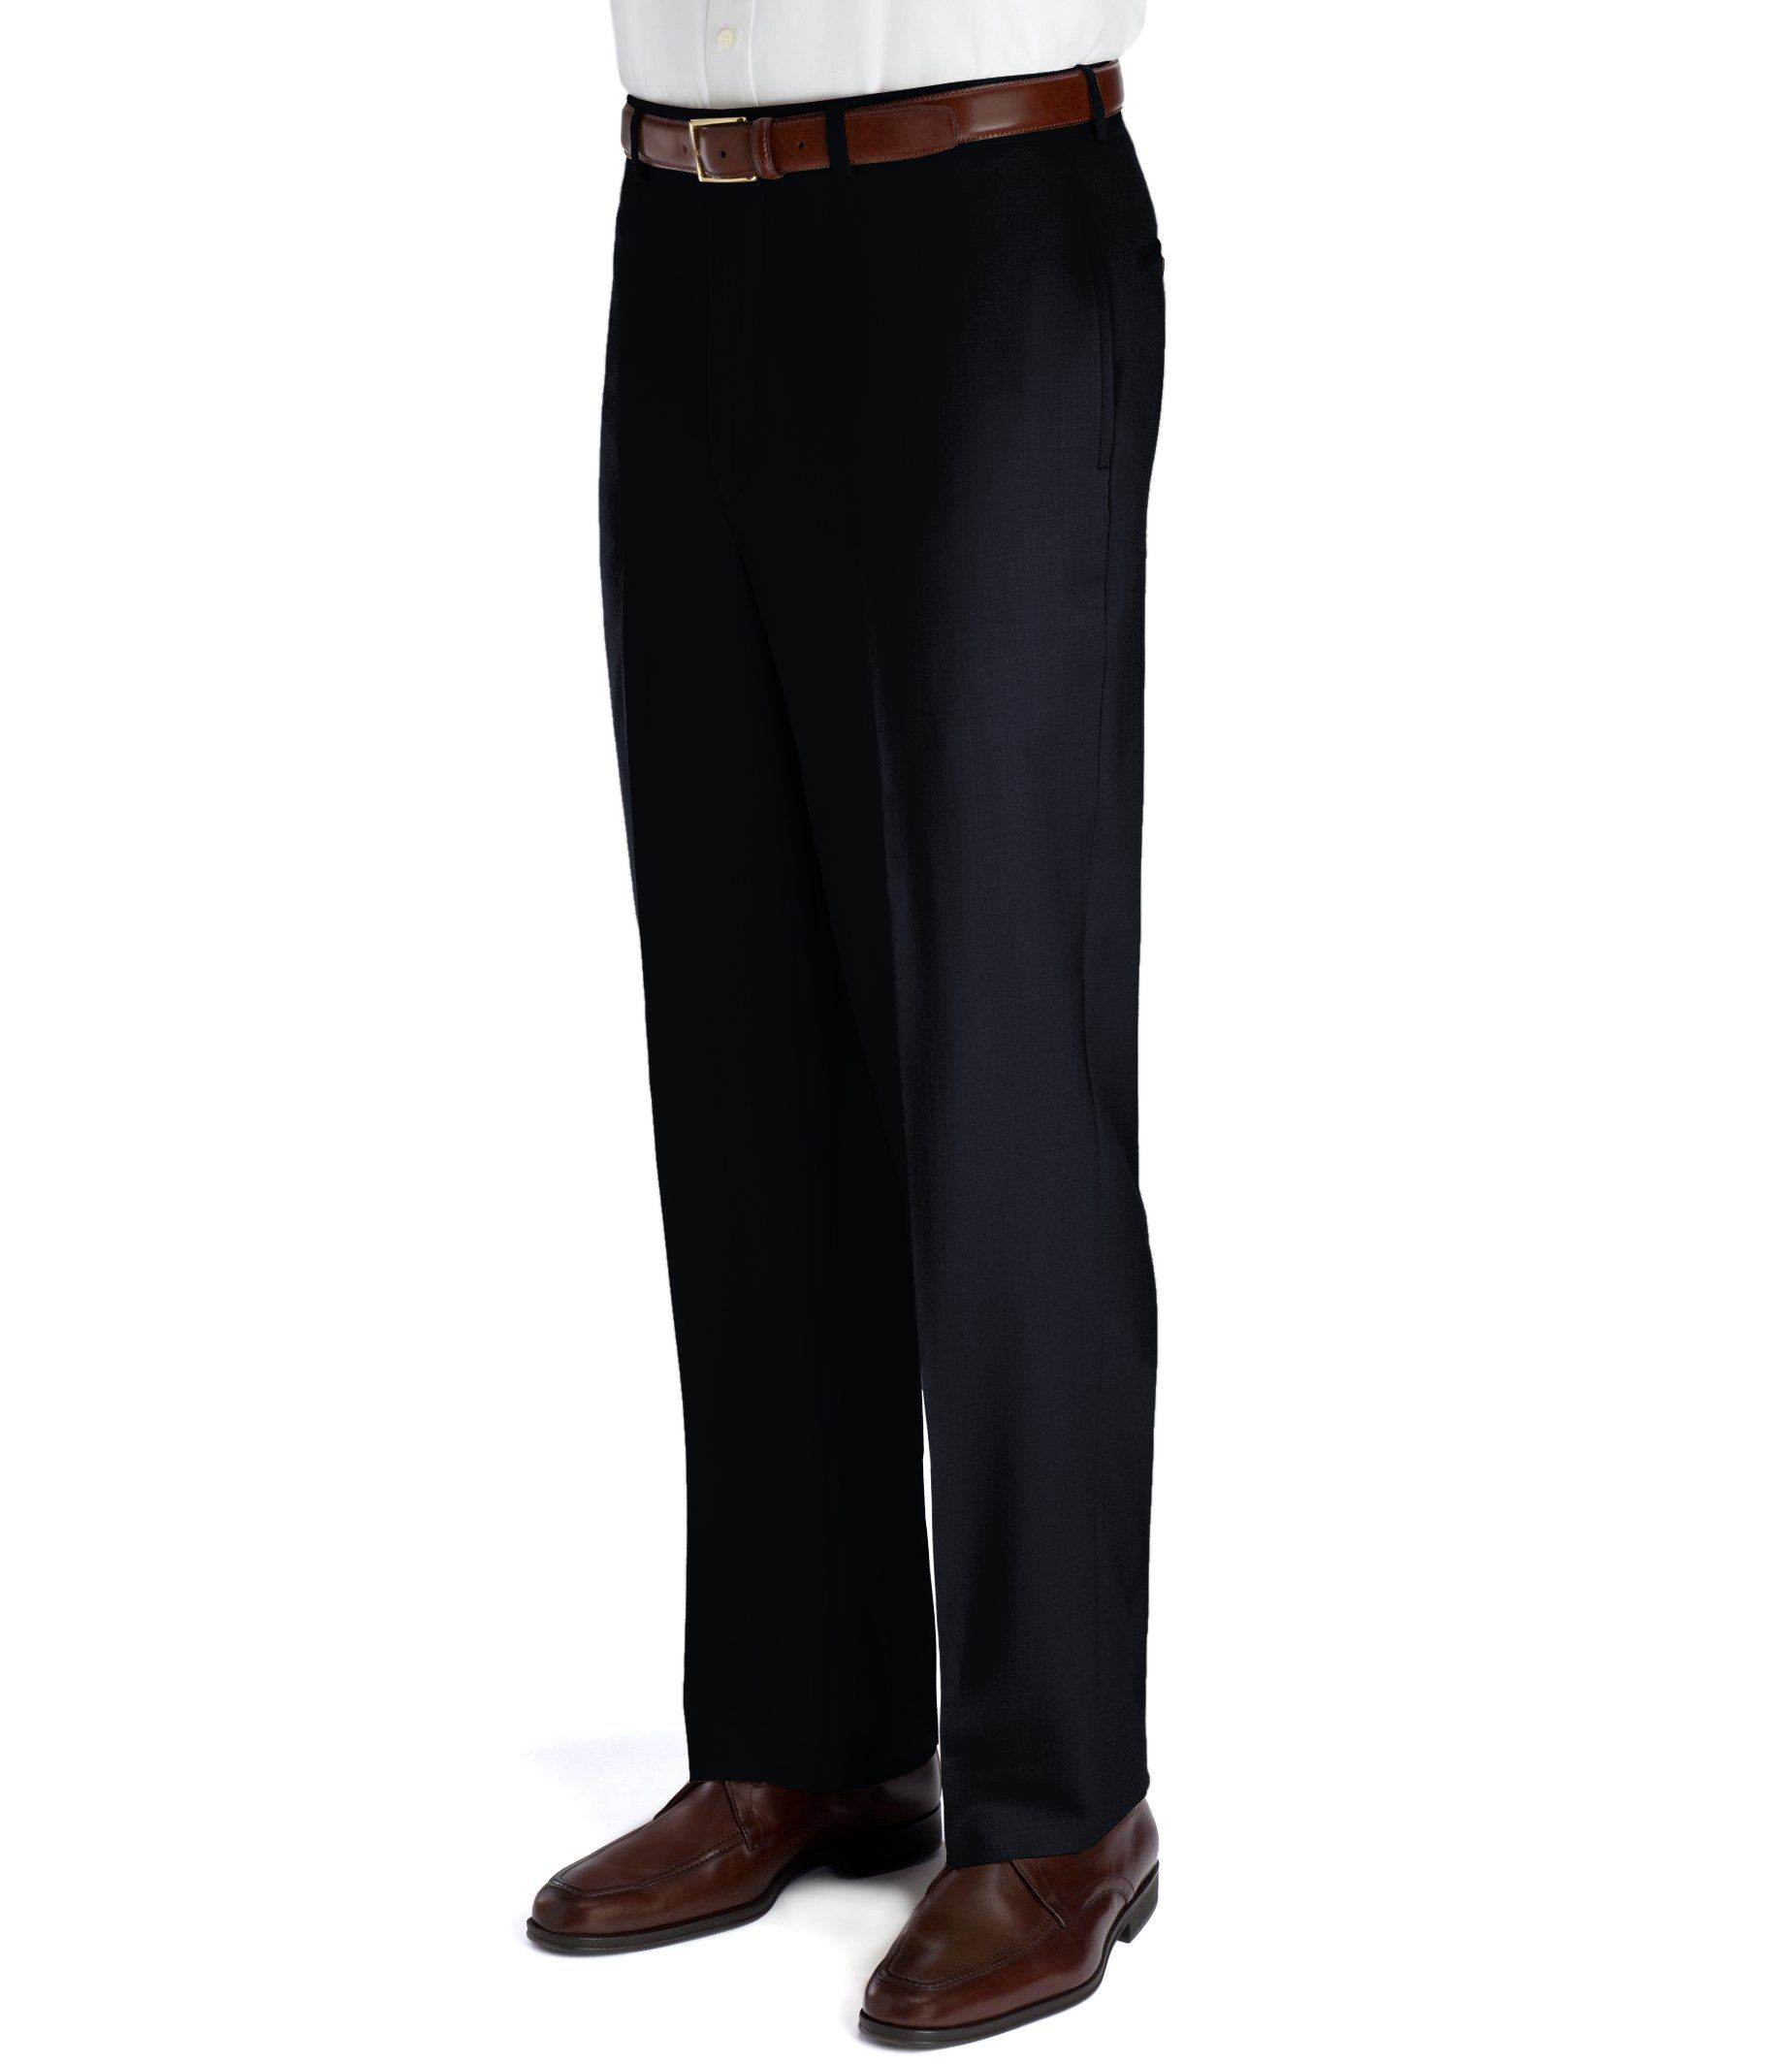 9761ae04376d Executive Collection Traditional Fit Flat Front Dress Pants CLEARANCE  2J8M